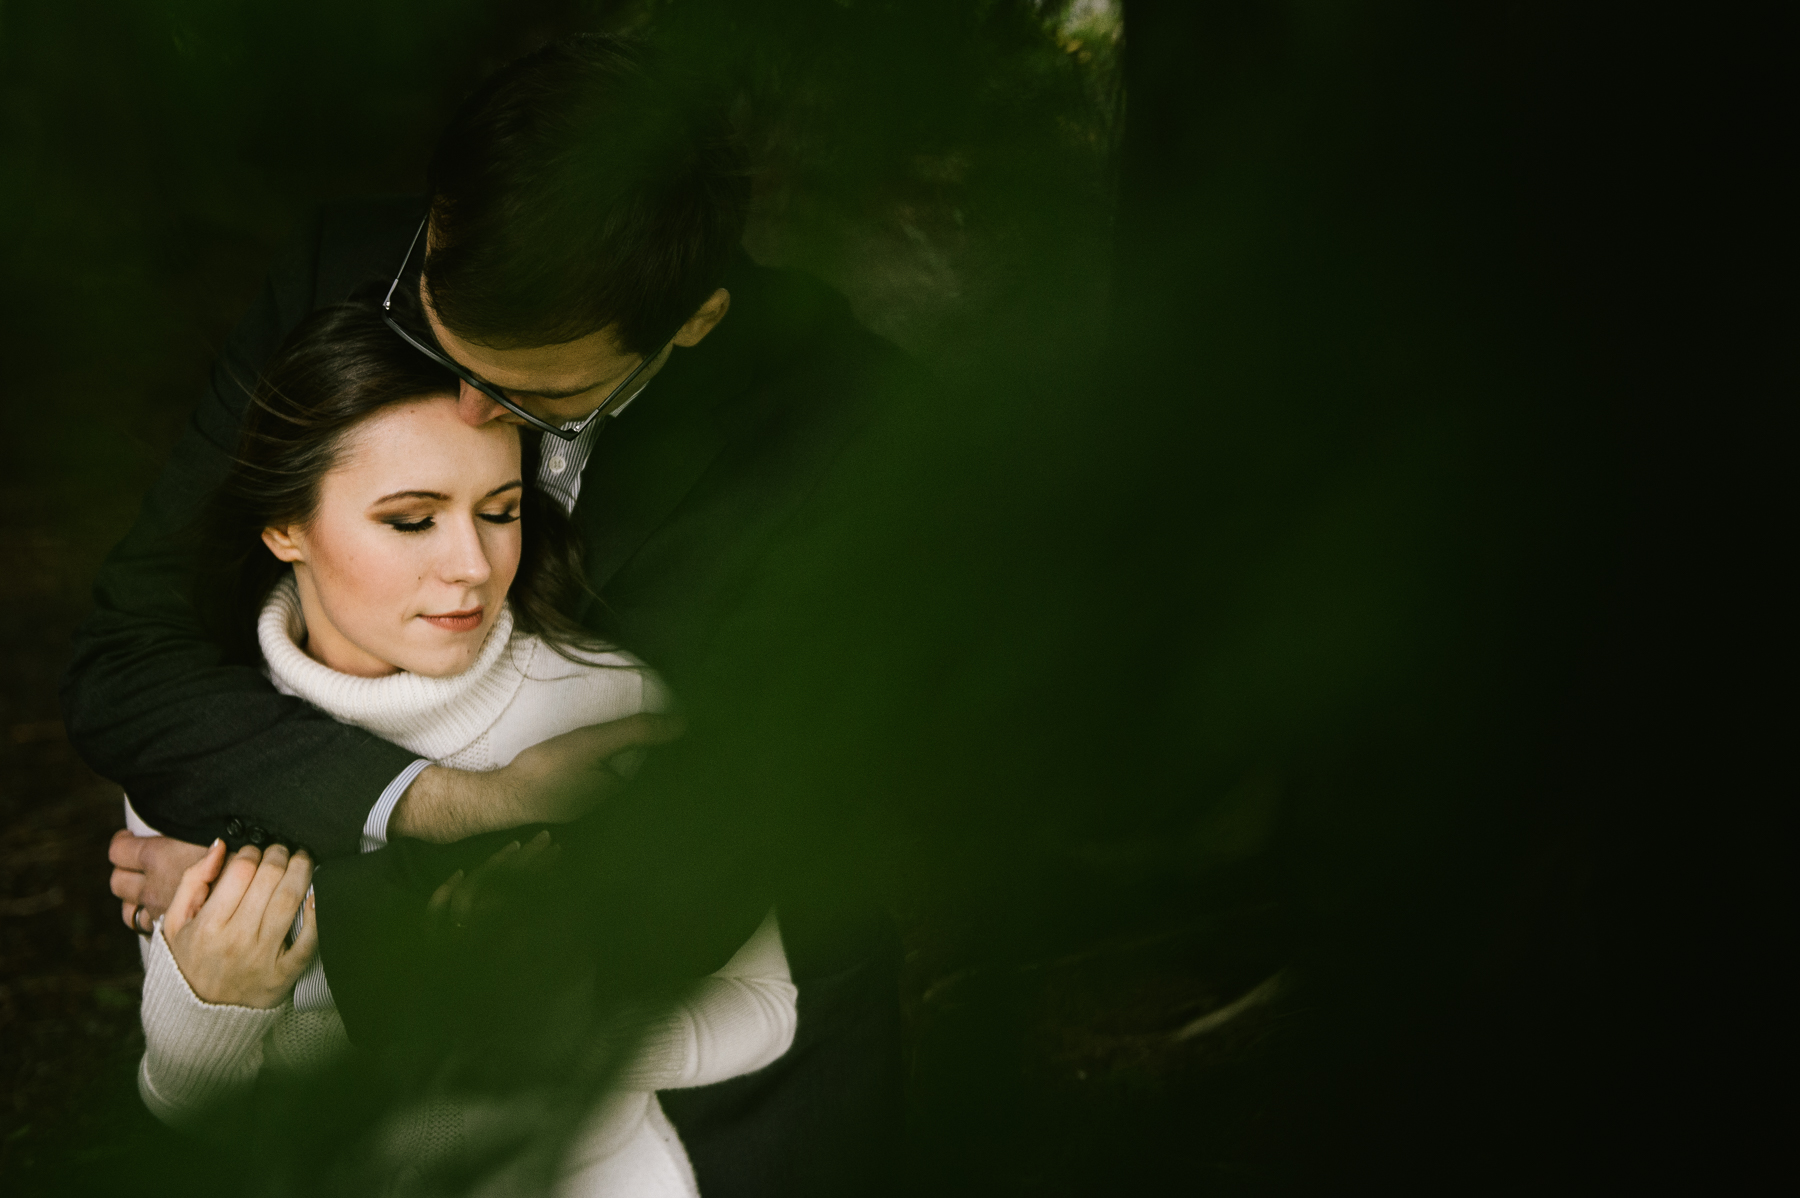 seattle-wedding-photographer-engagement-sessions-best-35